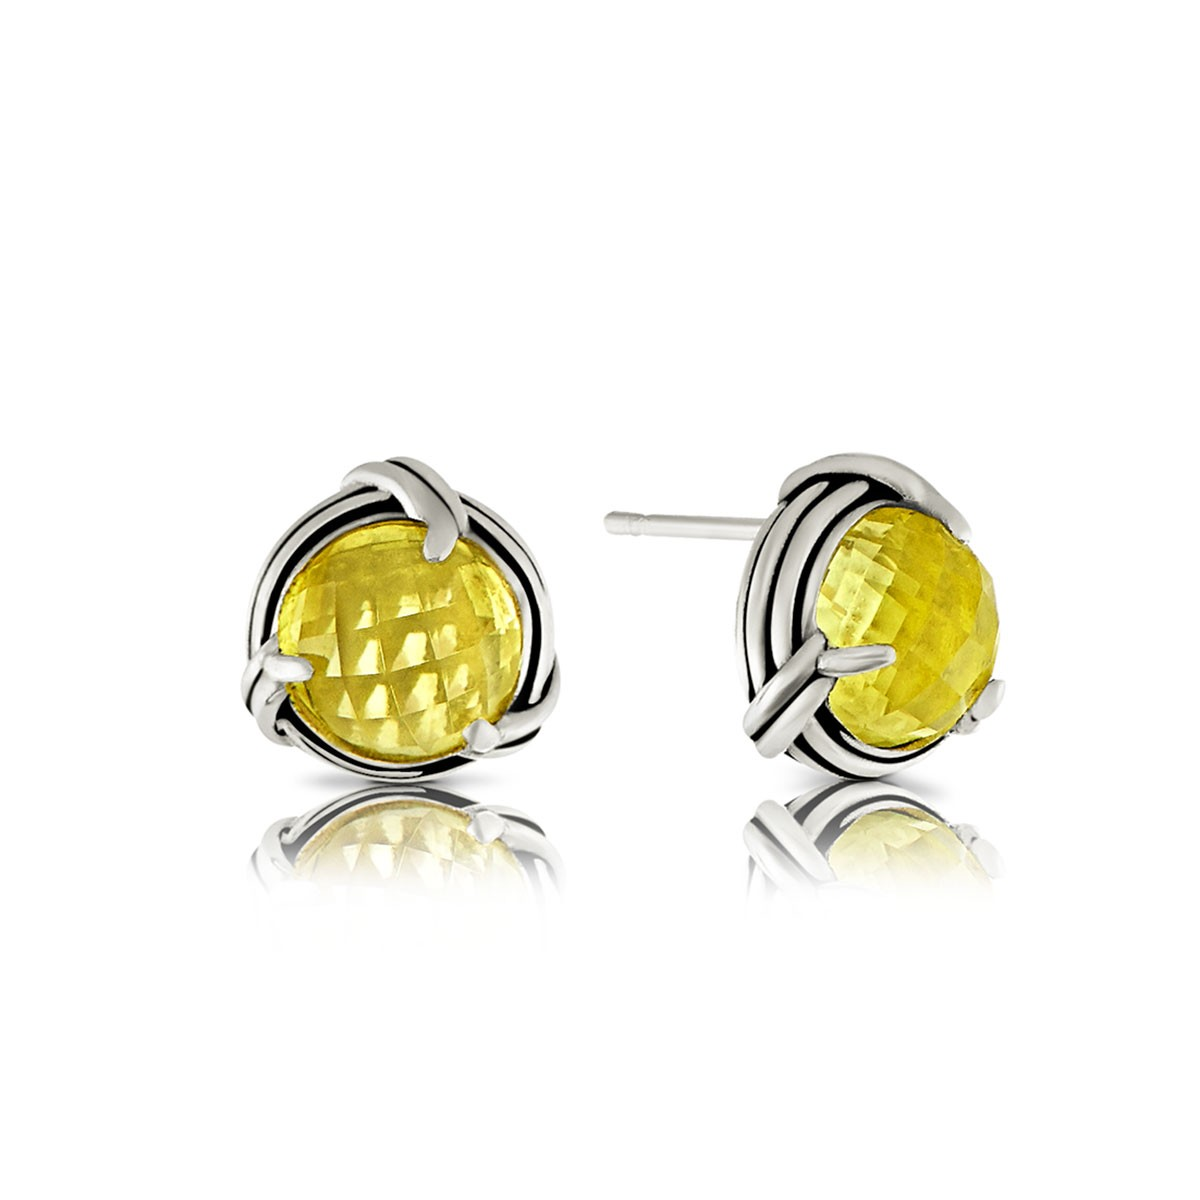 earrings property yellow gold room solid citrine l stud